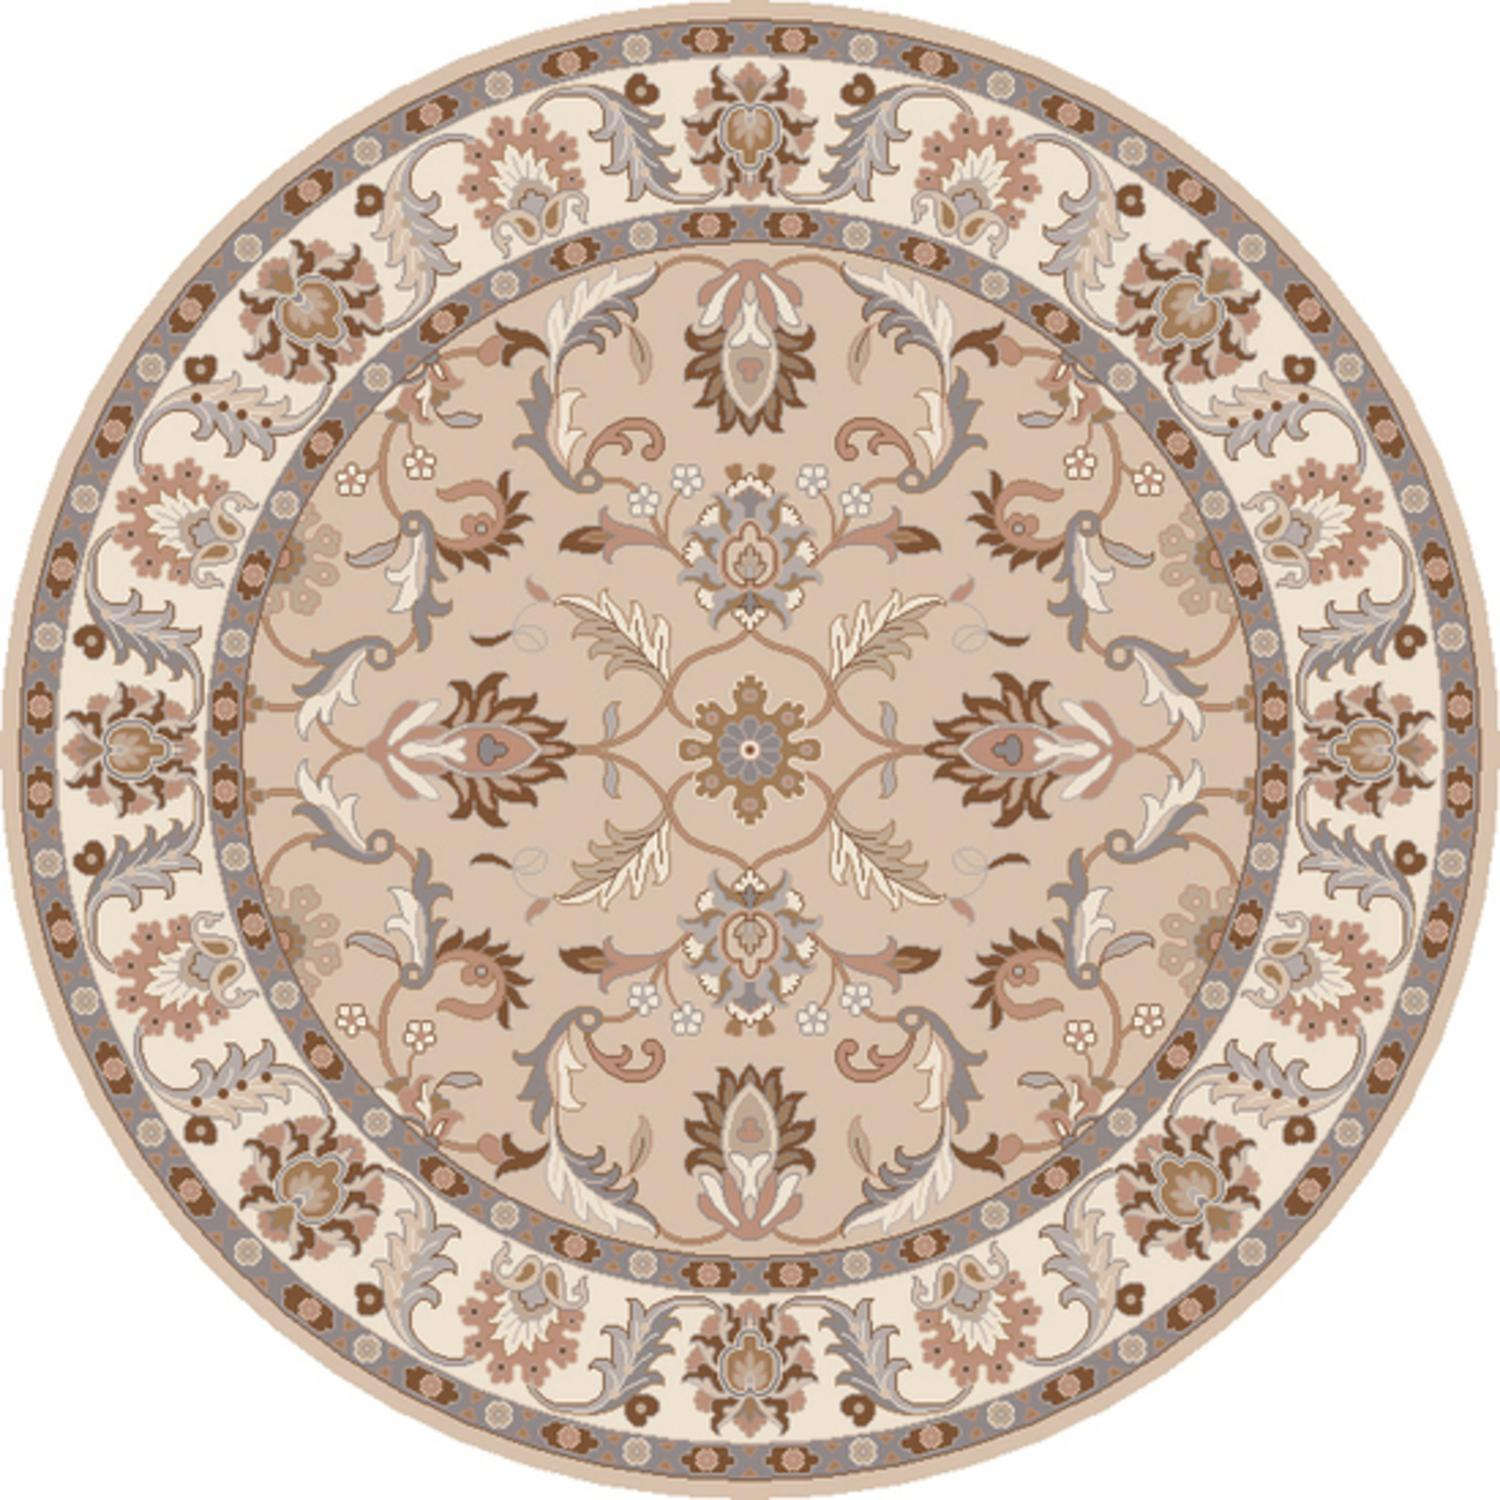 8' Publius Mushroom Brown and Creme Hand Tufted Wool Round Area Throw Rug